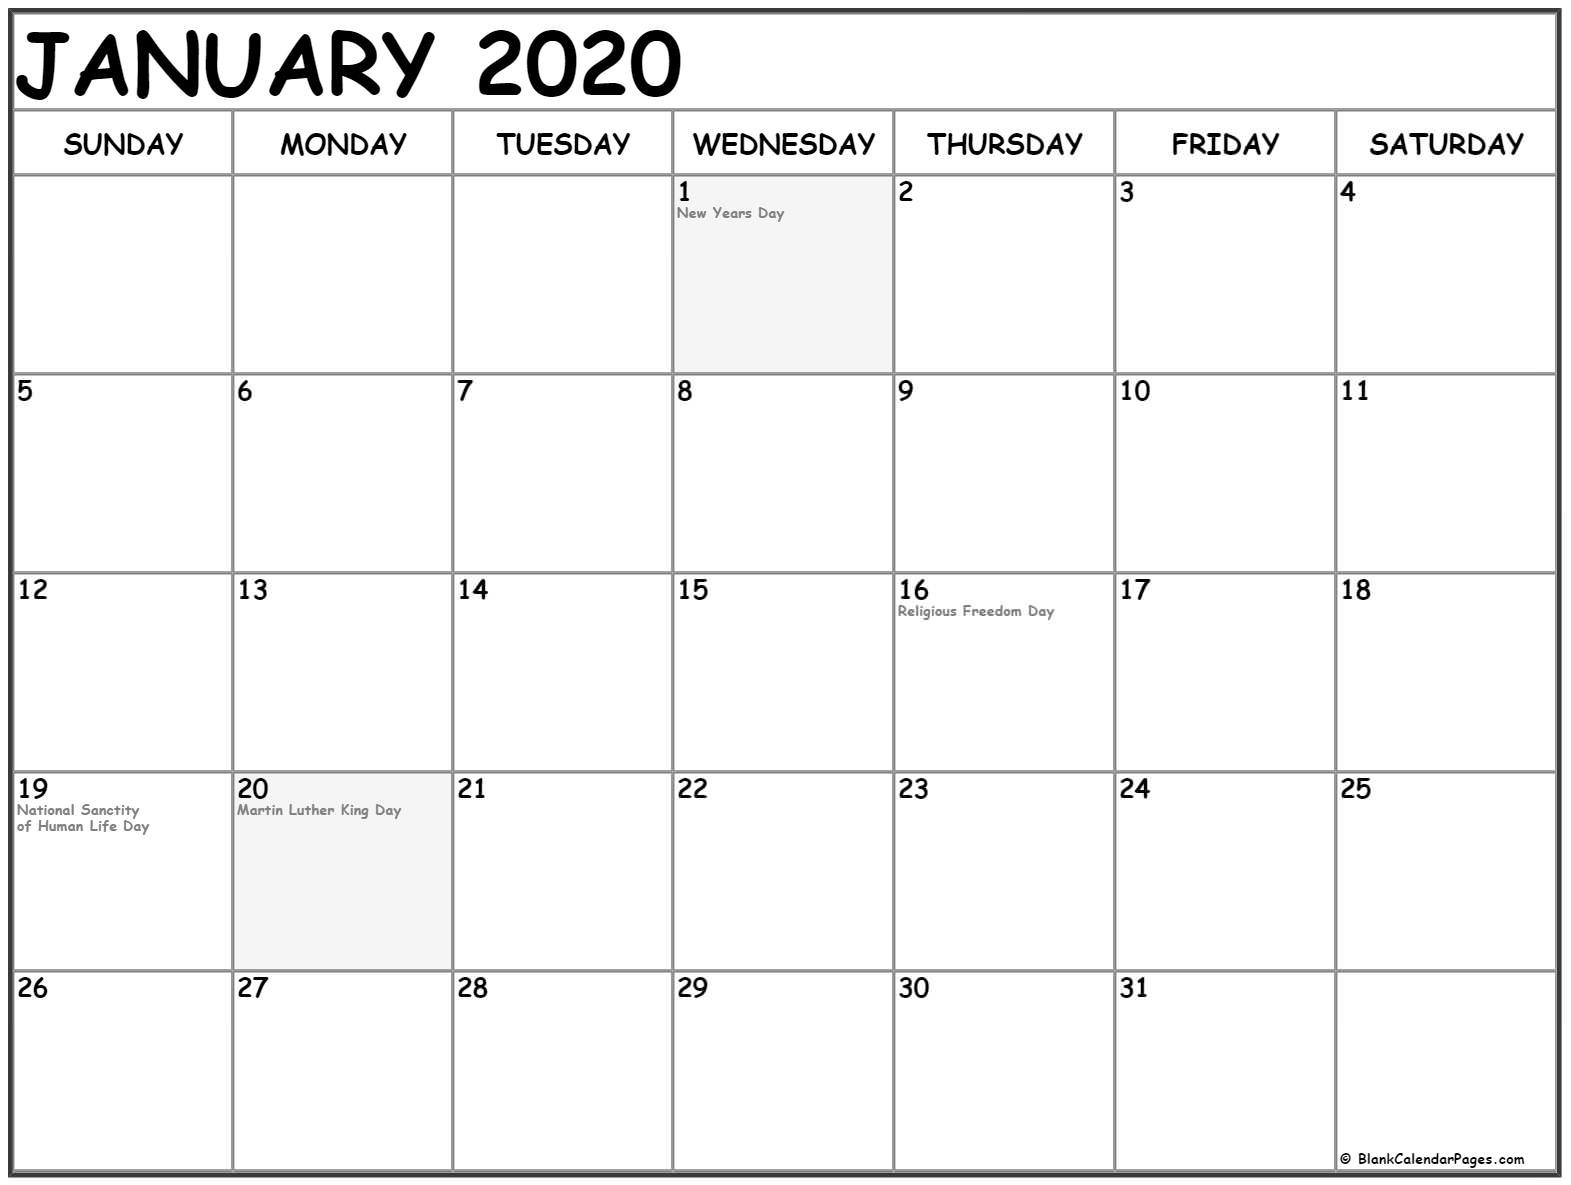 January 2020 Calendar Printable Templates Holidays - July-January 2020 Calendar Us